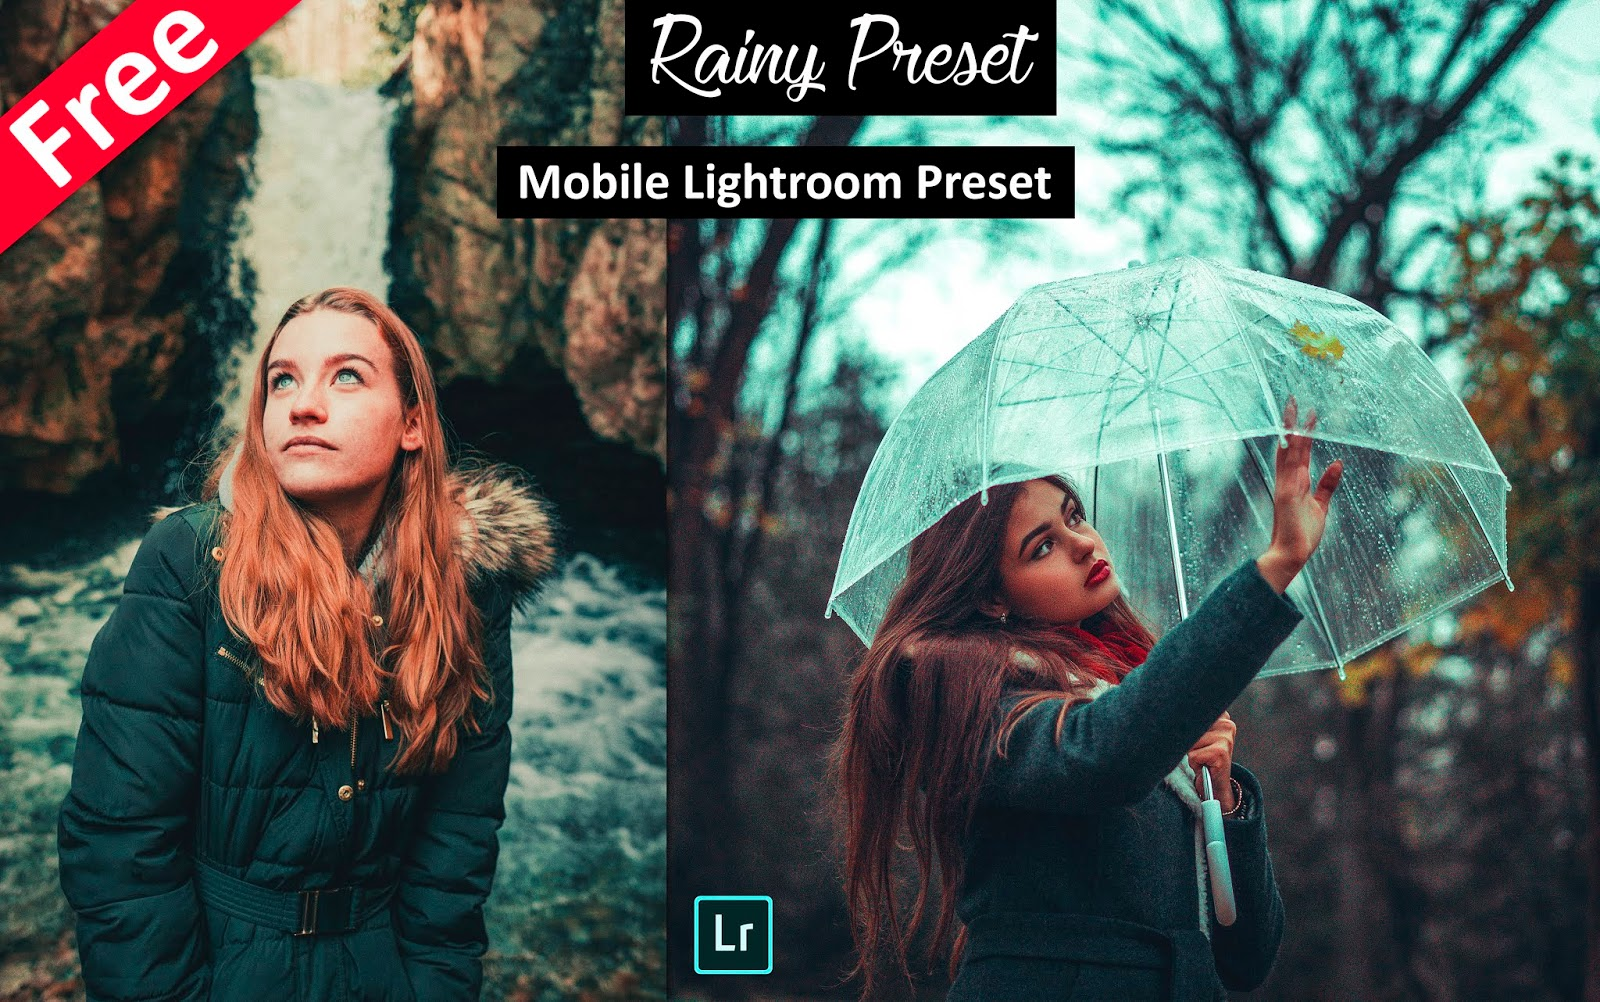 Download Monsoon Rainy Mobile Lightroom Preset for Free | How to Make Monsoon Rainy Effect in Mobile Lightroom